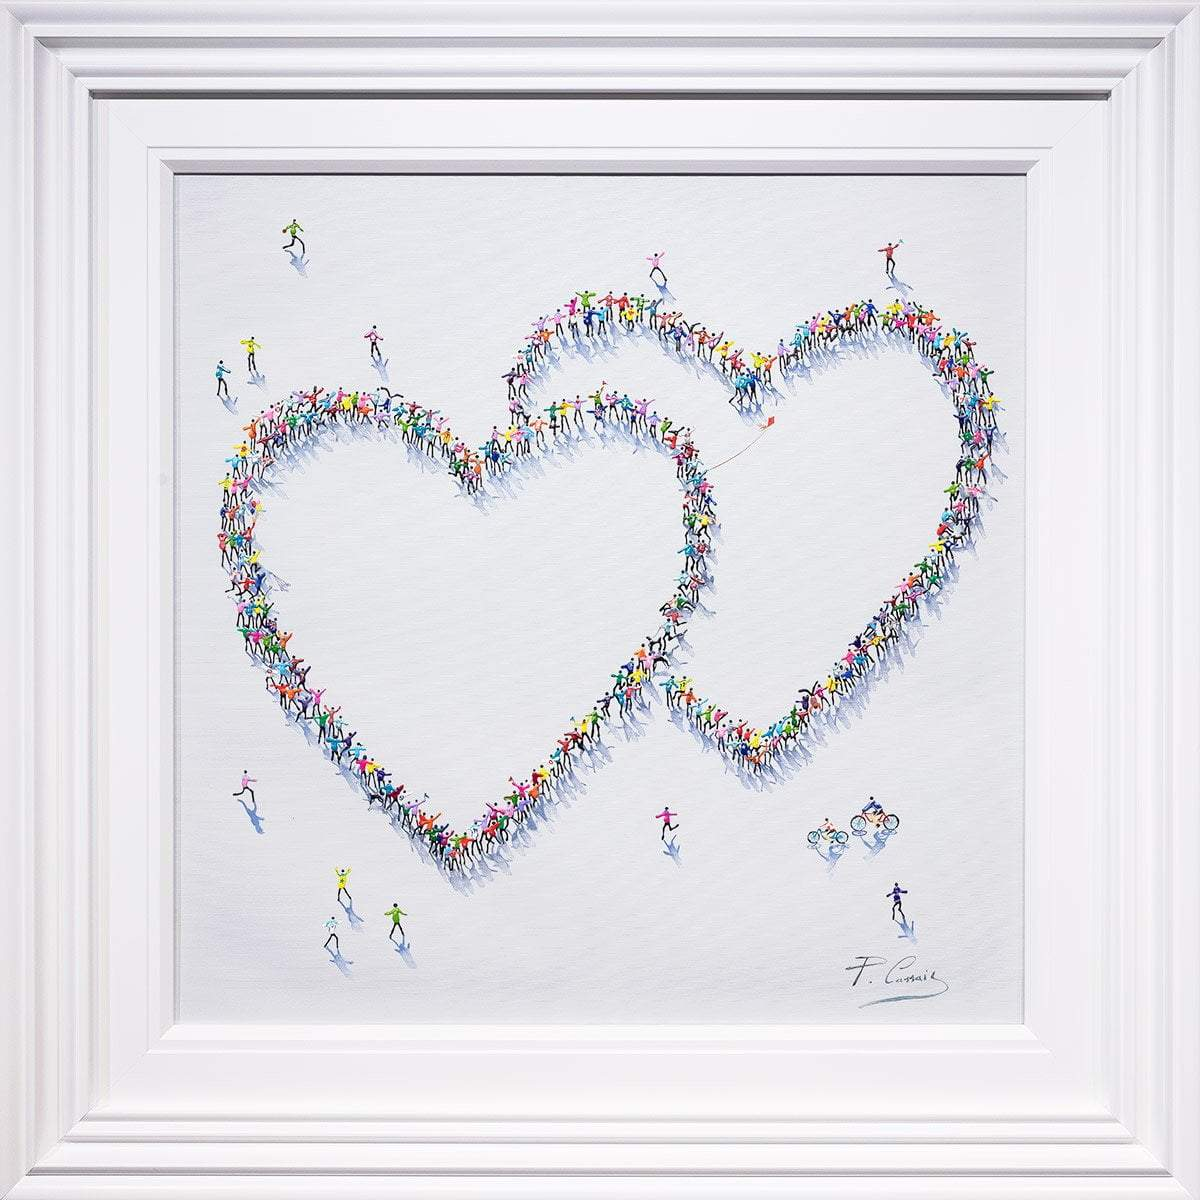 Fun and Games - Original Paola Cassais Framed